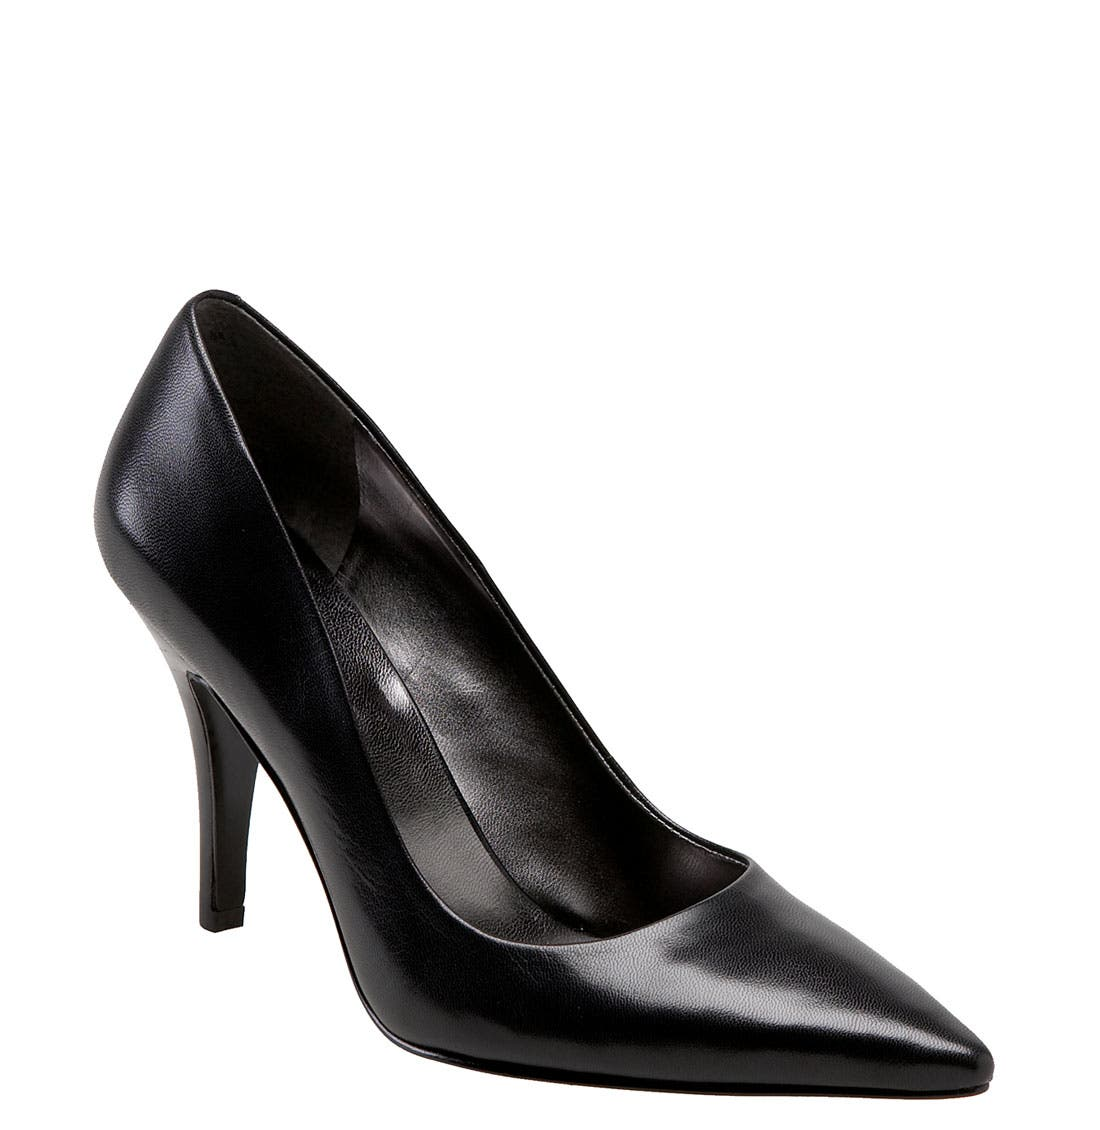 Alternate Image 1 Selected - Nine West 'Madeup' Pump